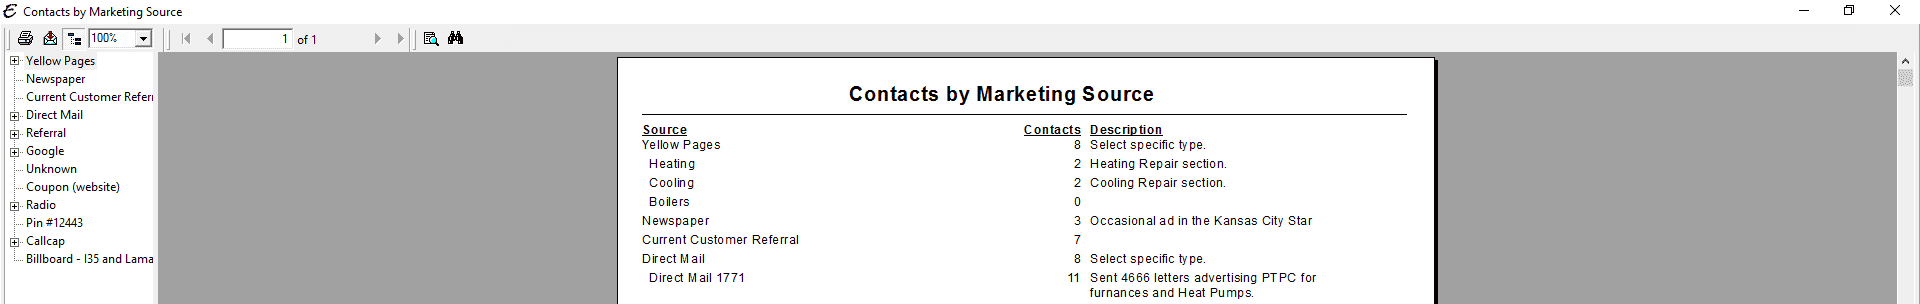 Contacts by Marketing Source PDF